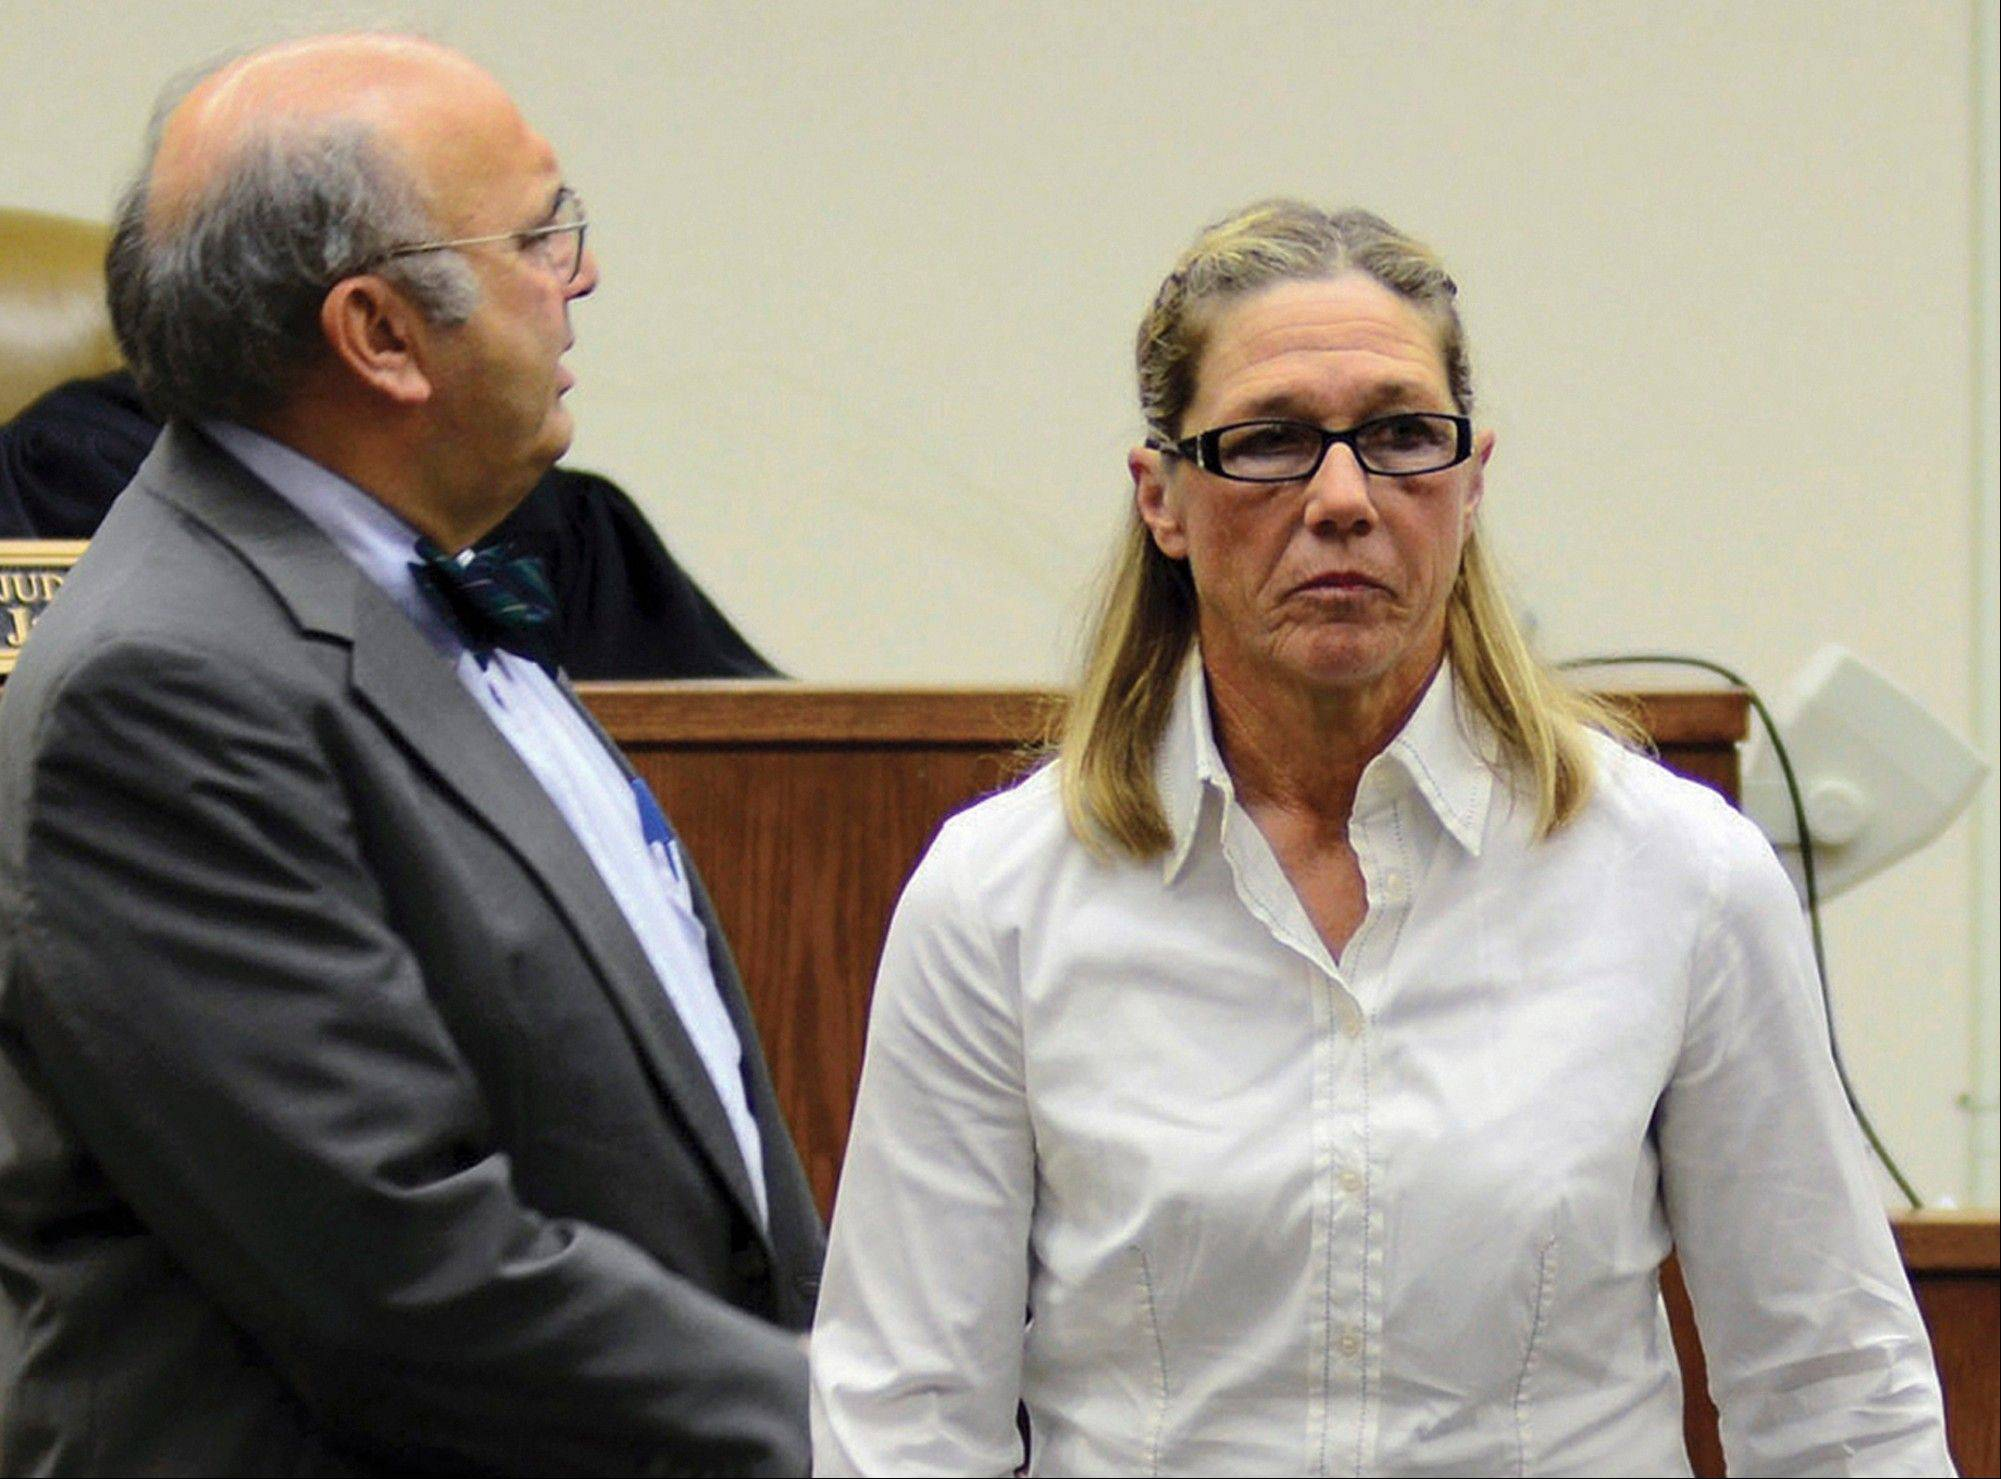 Former Dixon comptroller Rita Crundwell was sentenced in February 2013 to nearly 20 years in prison.